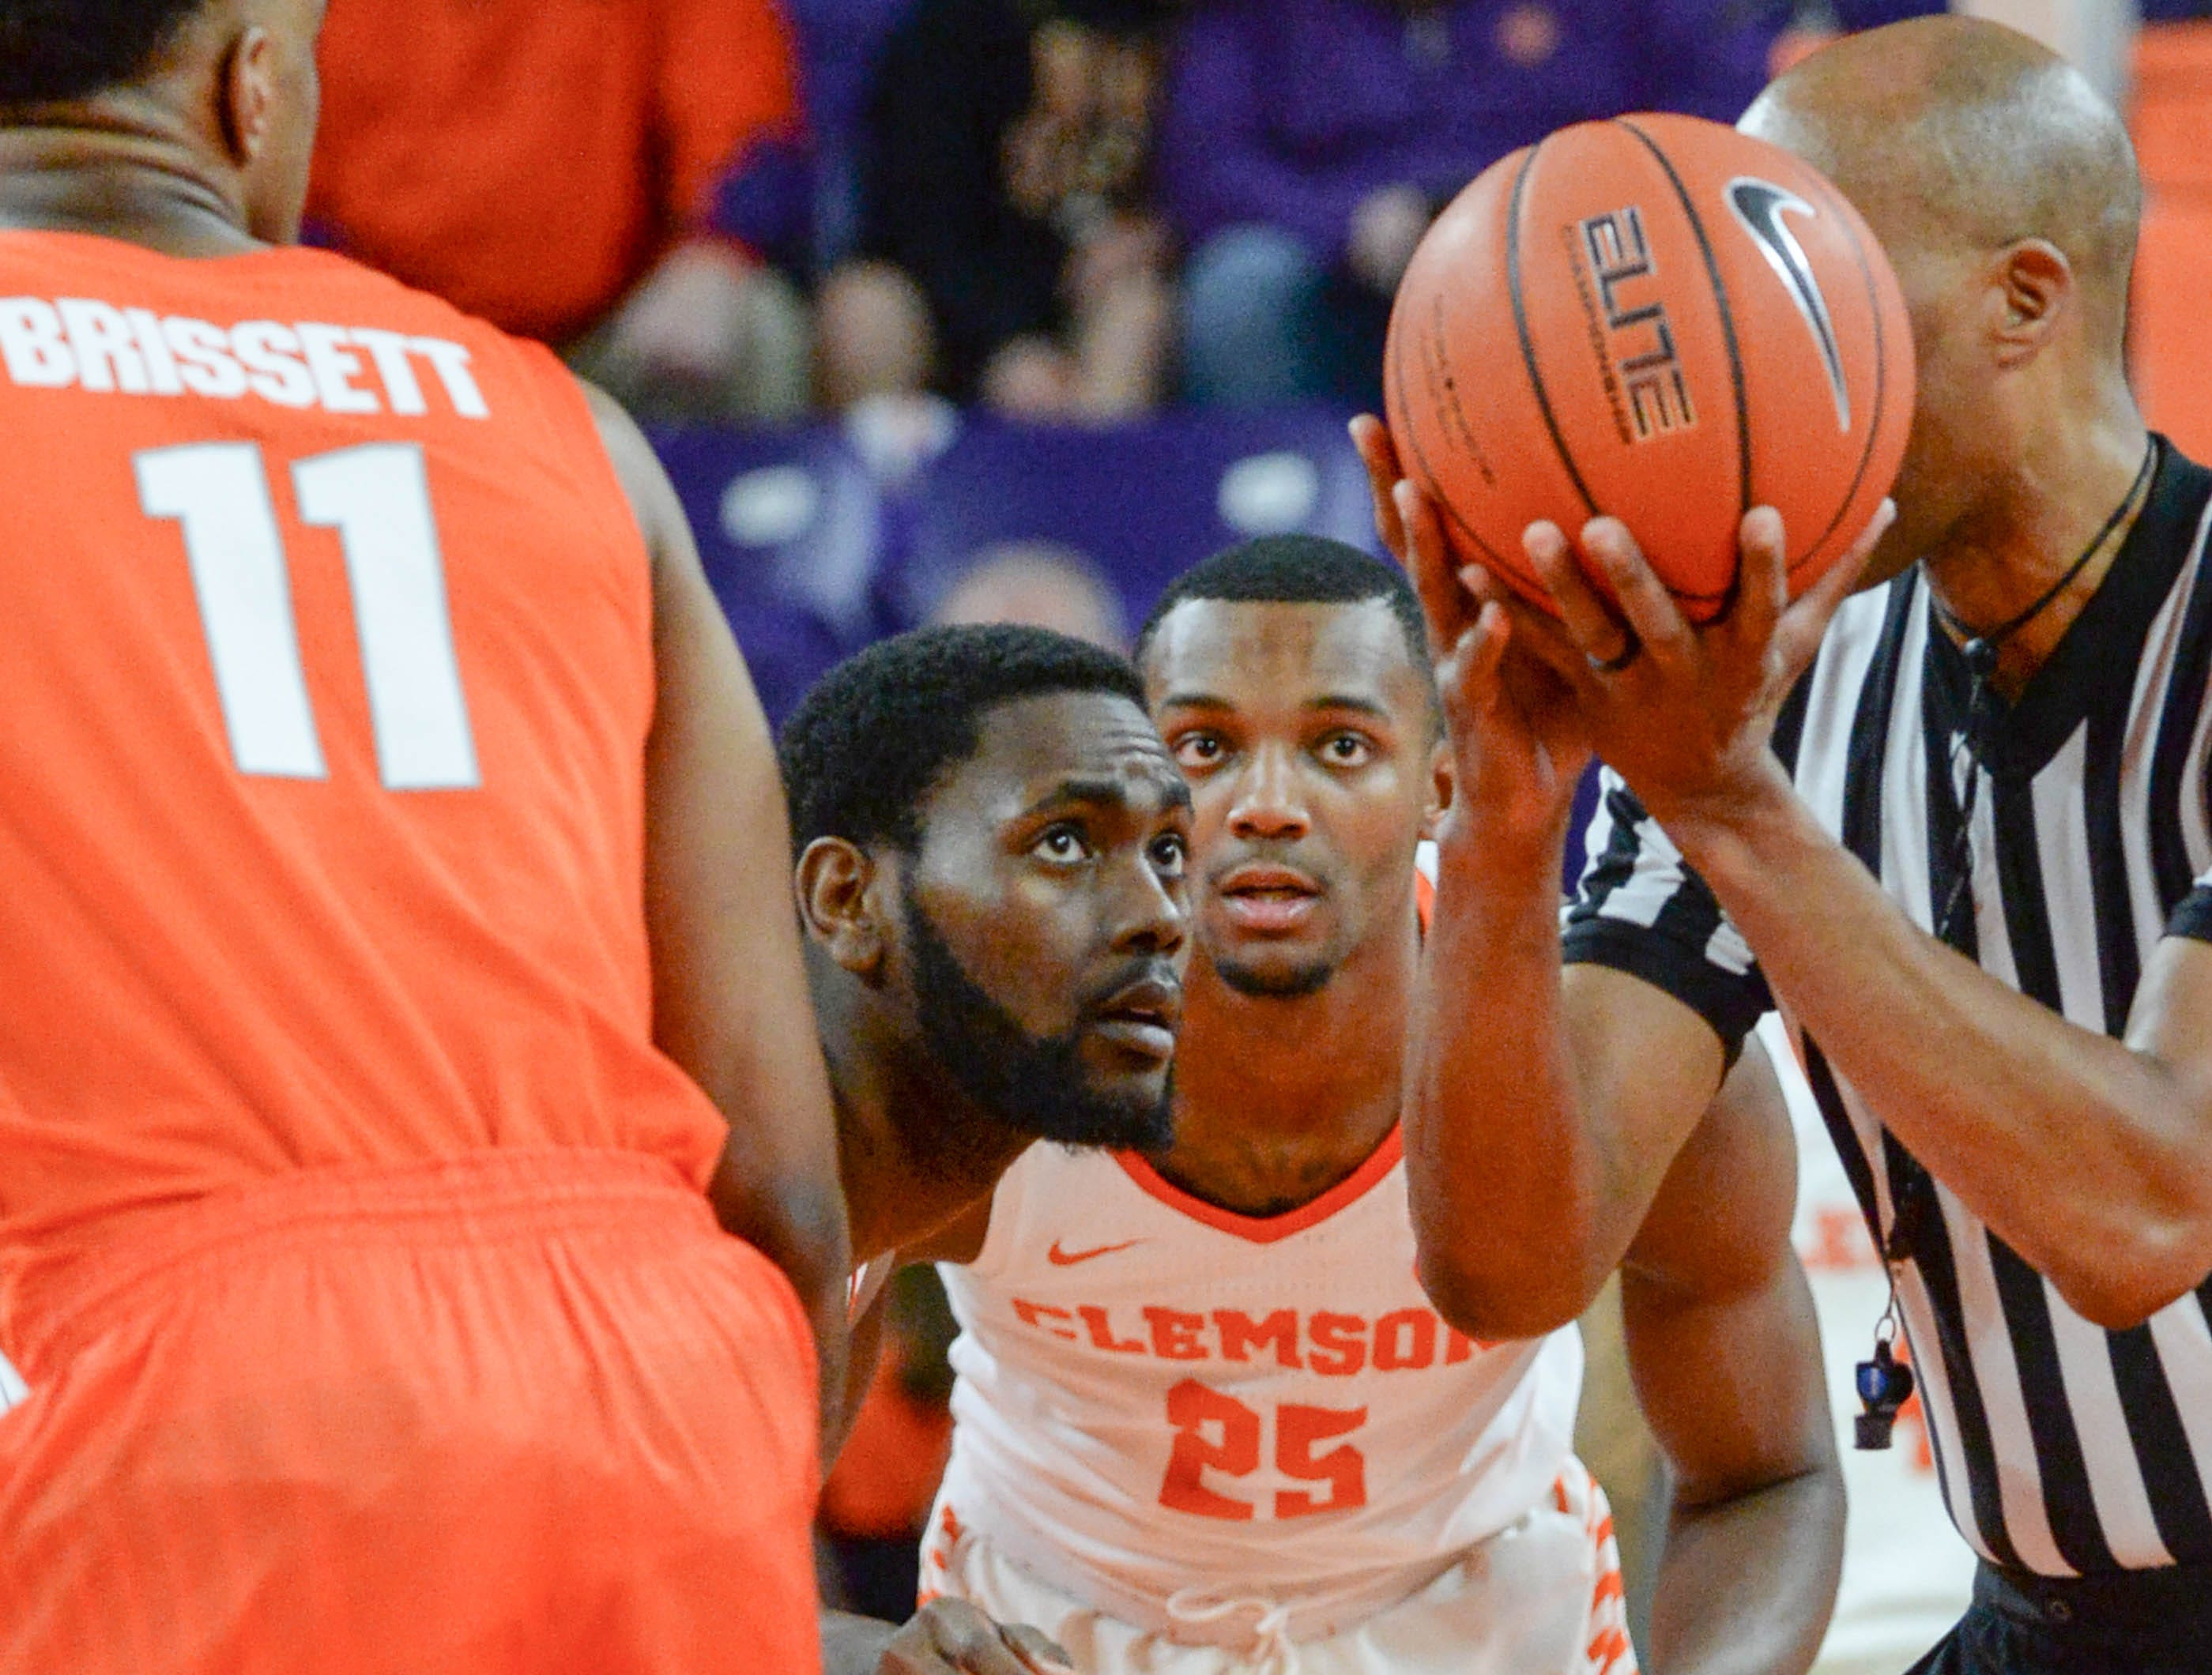 Clemson forward Elijah Thomas (14) watches as he wins the tip off during the first half at Littlejohn Coliseum in Clemson Saturday, March 9, 2019.